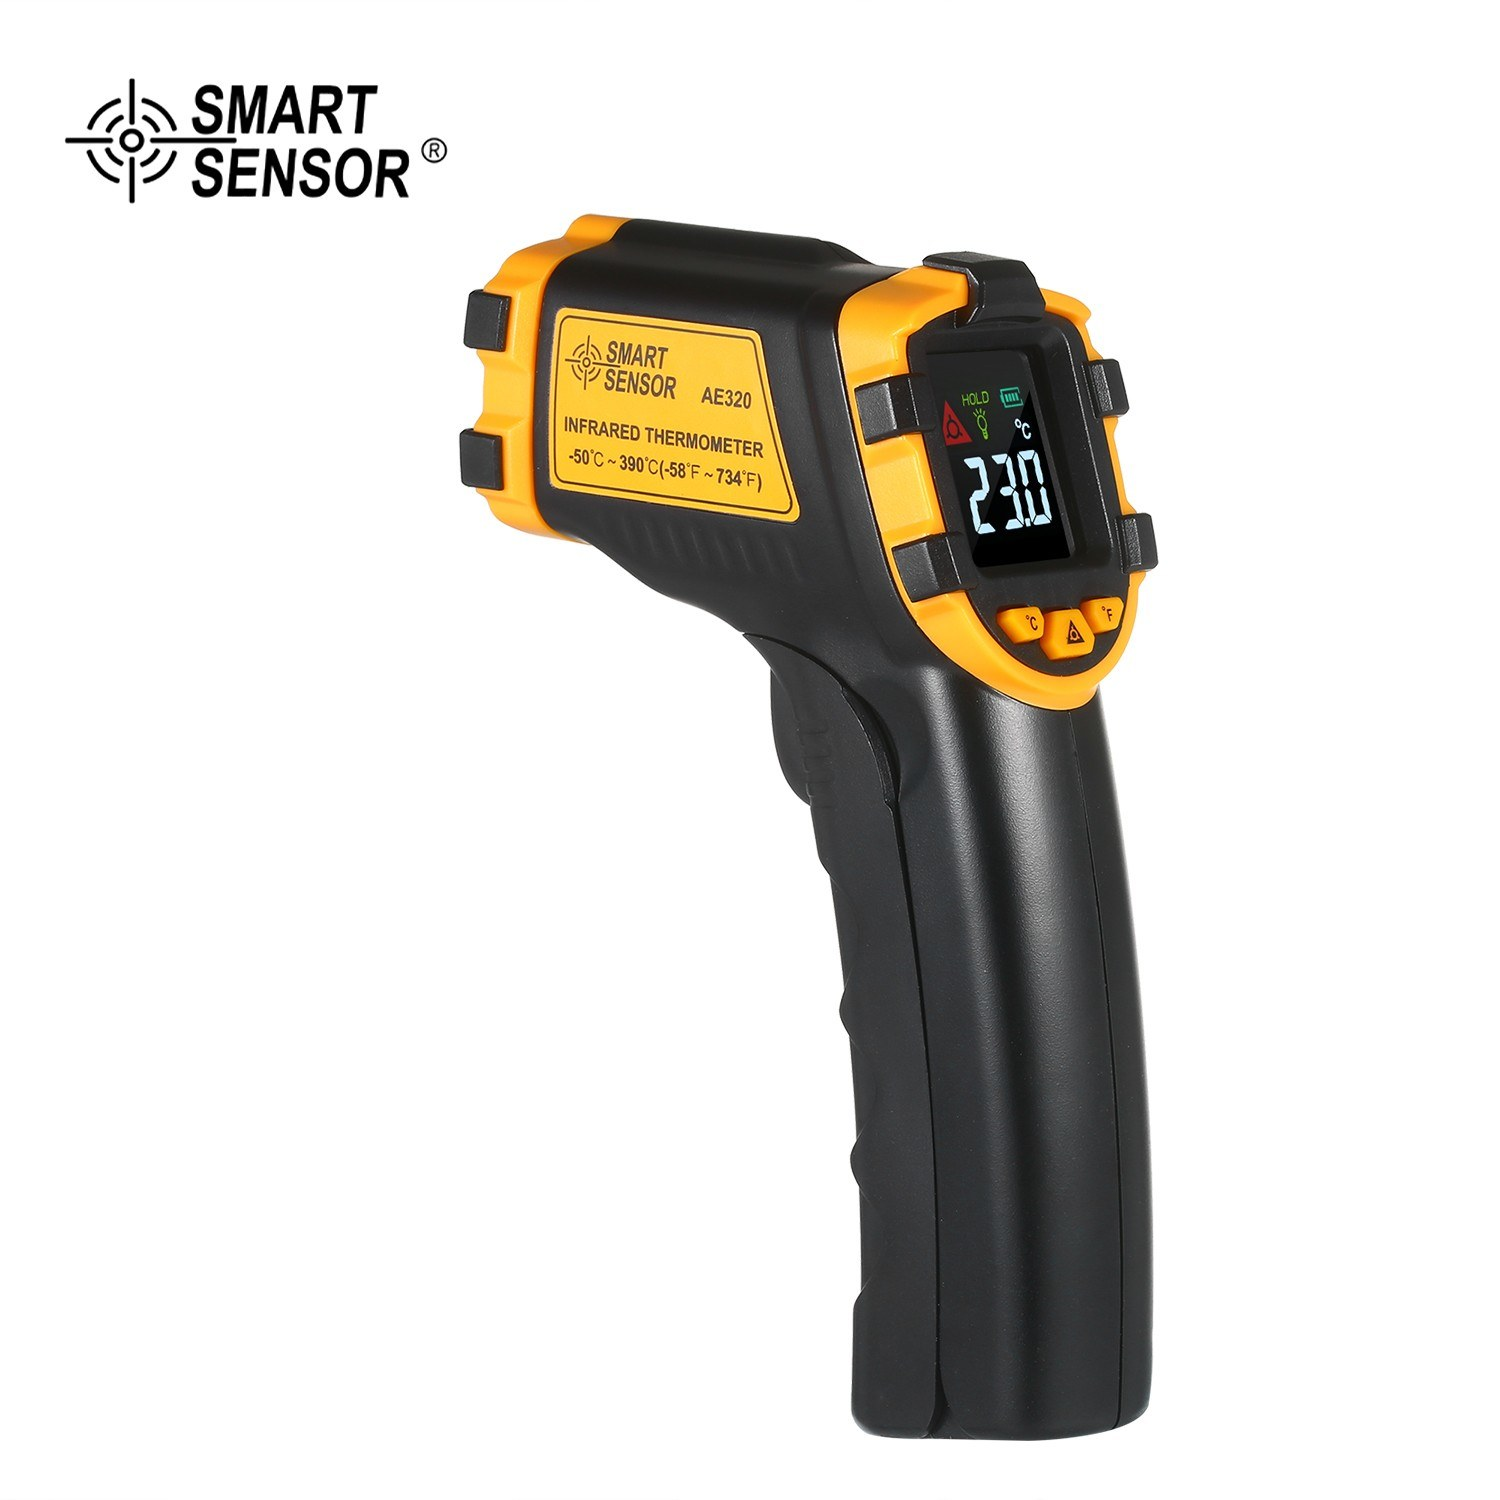 cafago.com - 46% OFF SMART SENSOR -50¡«390¡æ 12:1 Mini Handheld Digital Non-contact IR Infrared Thermometer,free shipping+$16.49